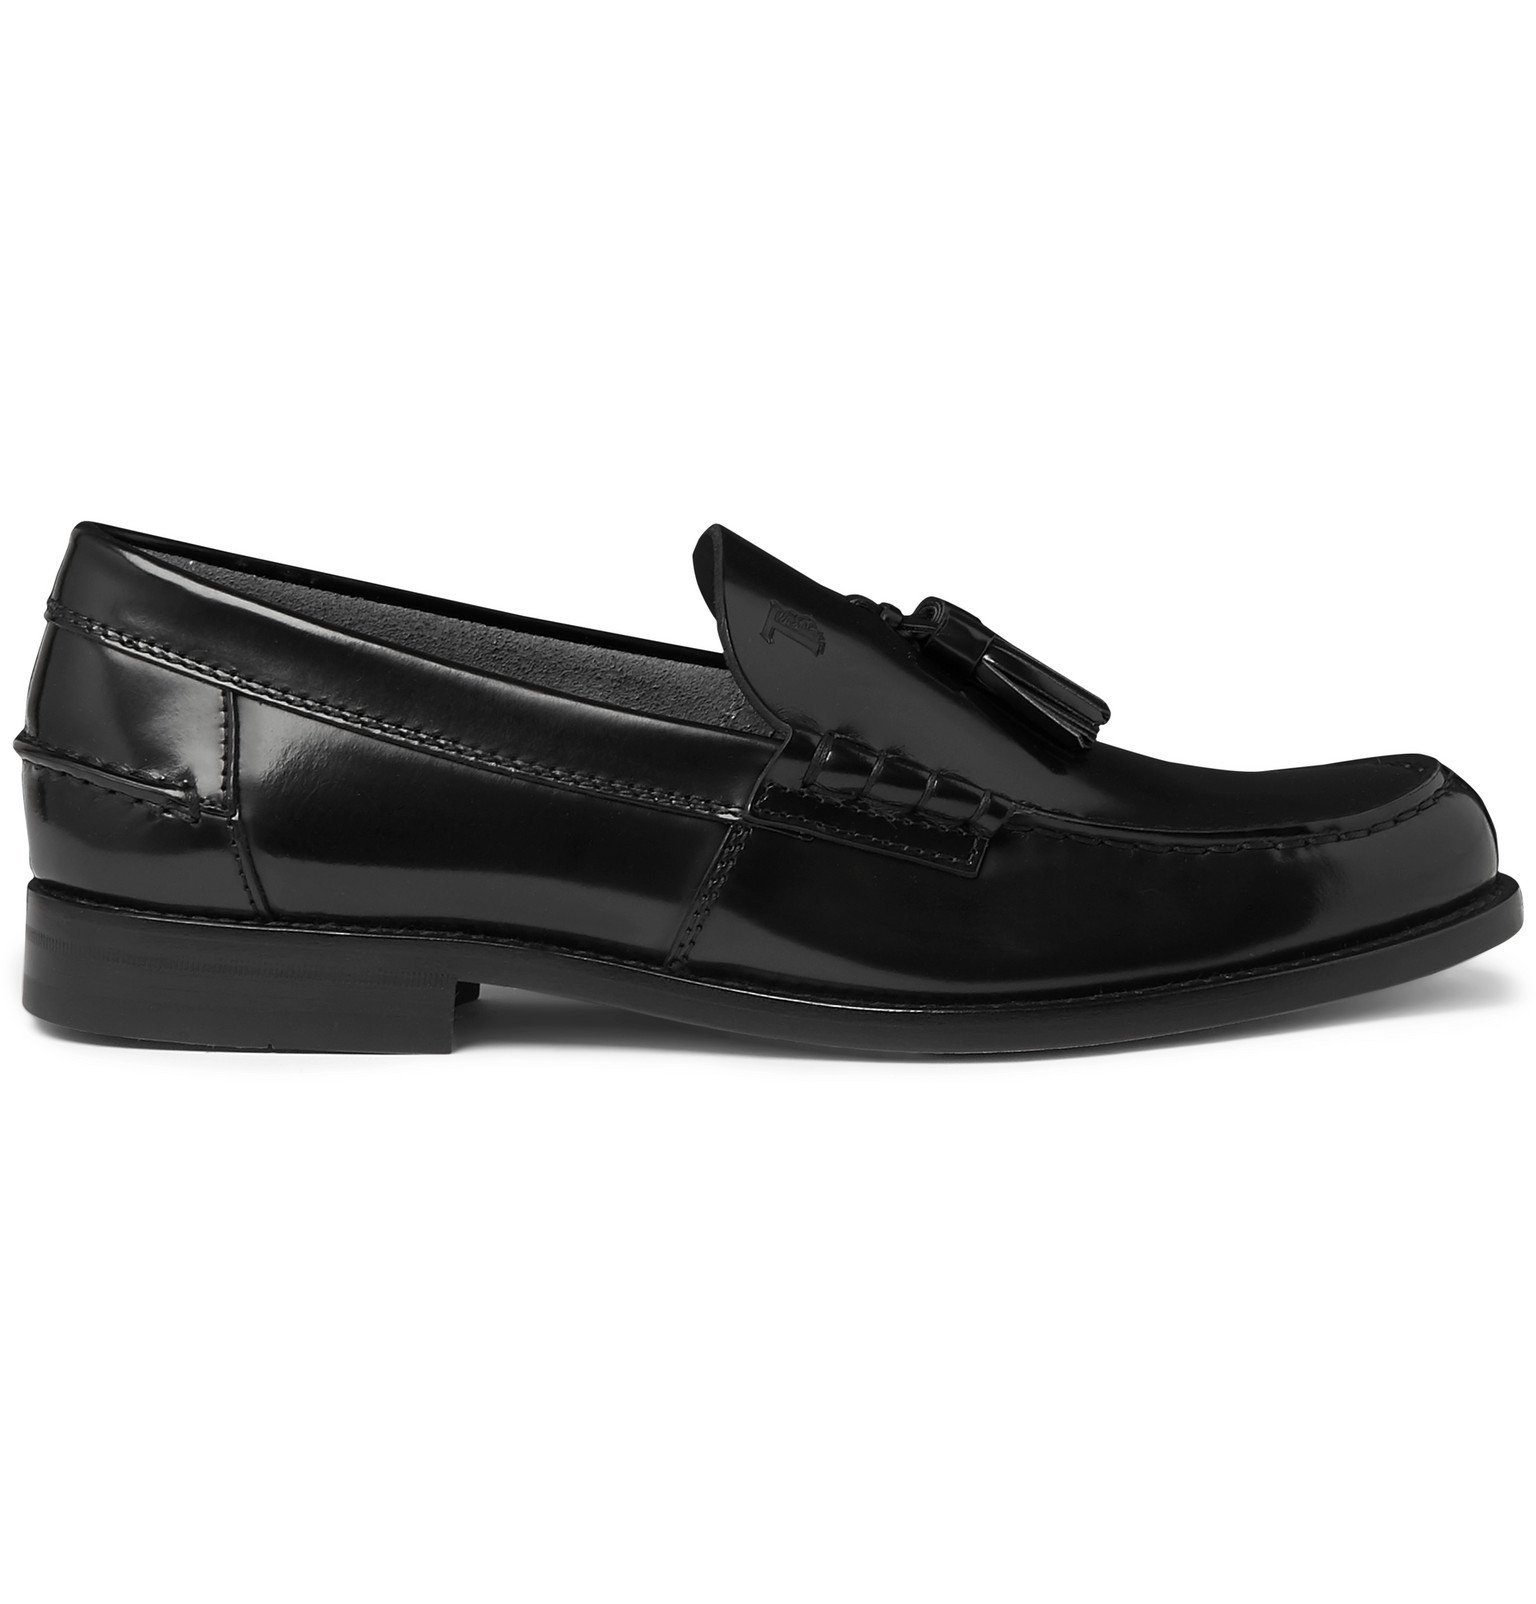 Tod's - Polished-Leather Tasselled Loafers - Black